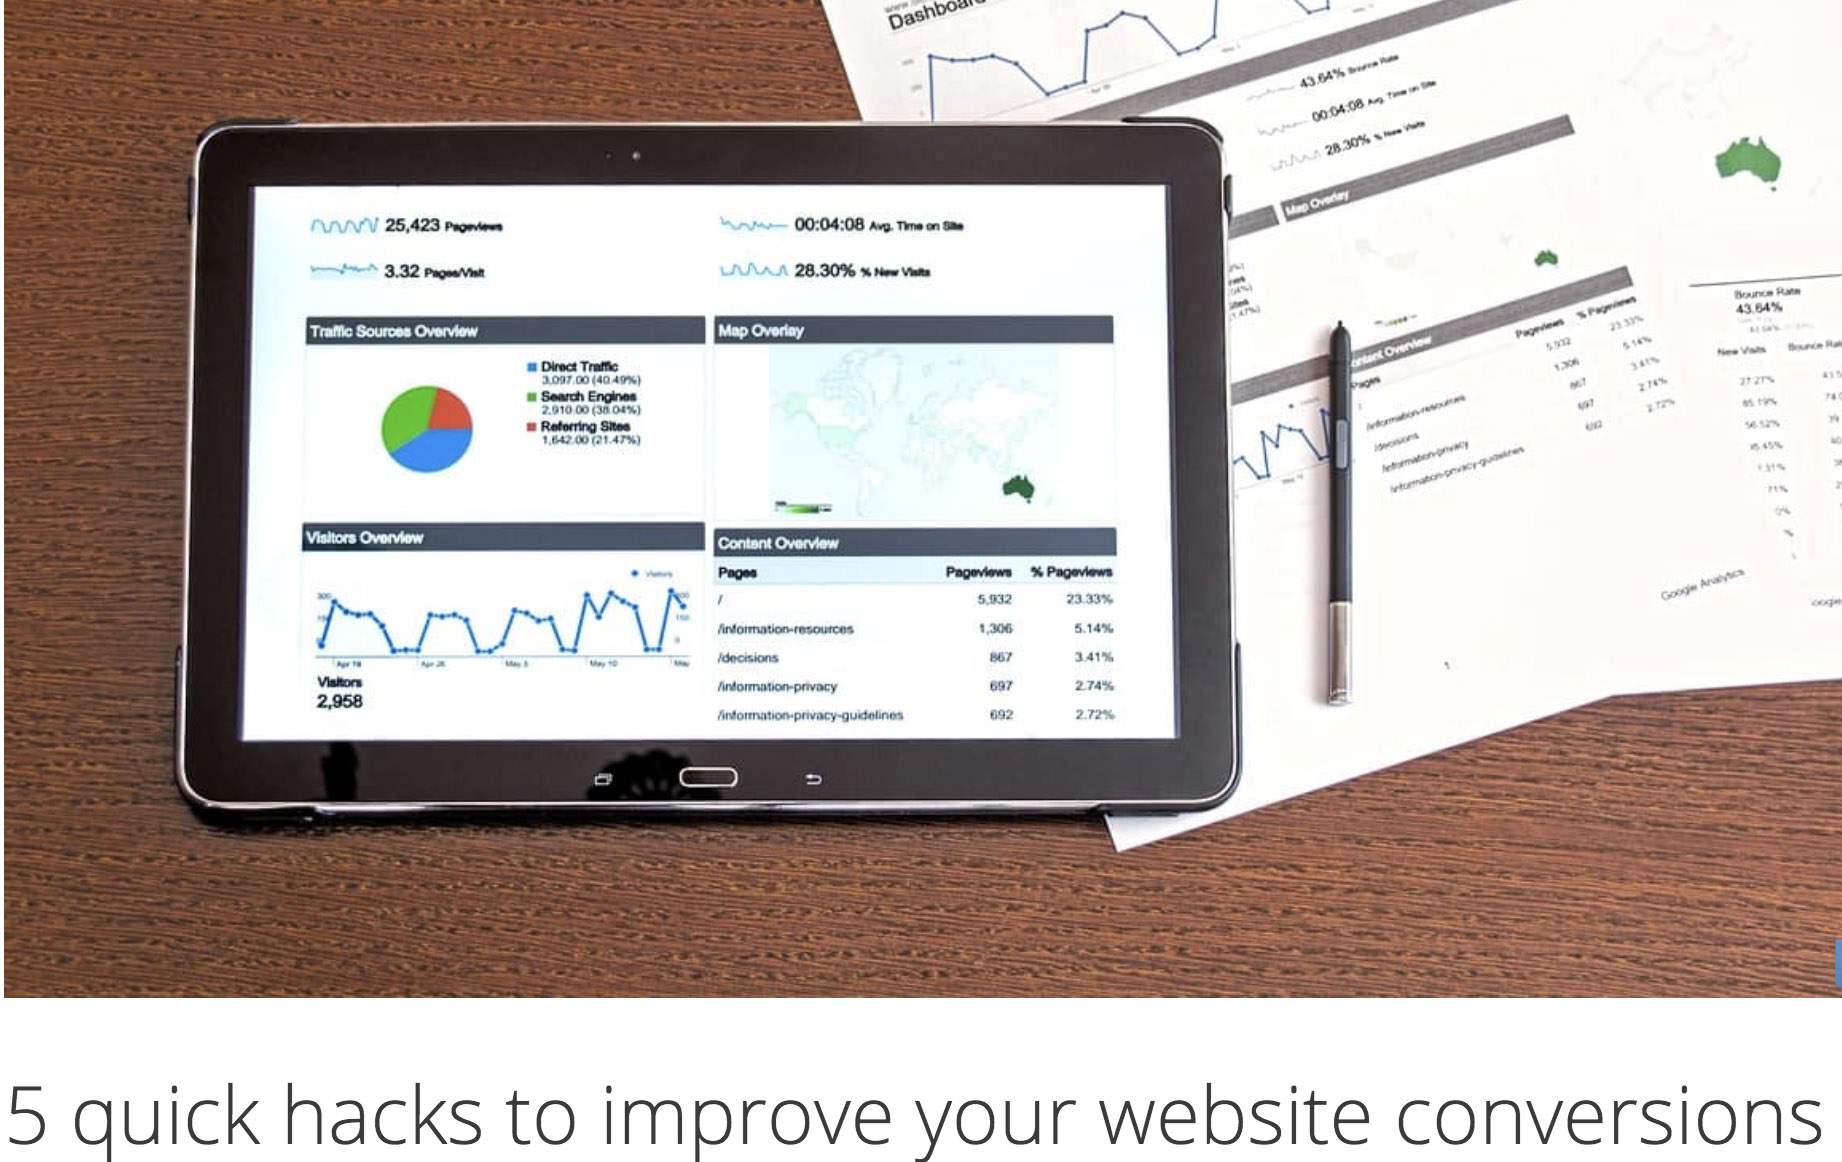 5 quick hacks to improve your website conversions